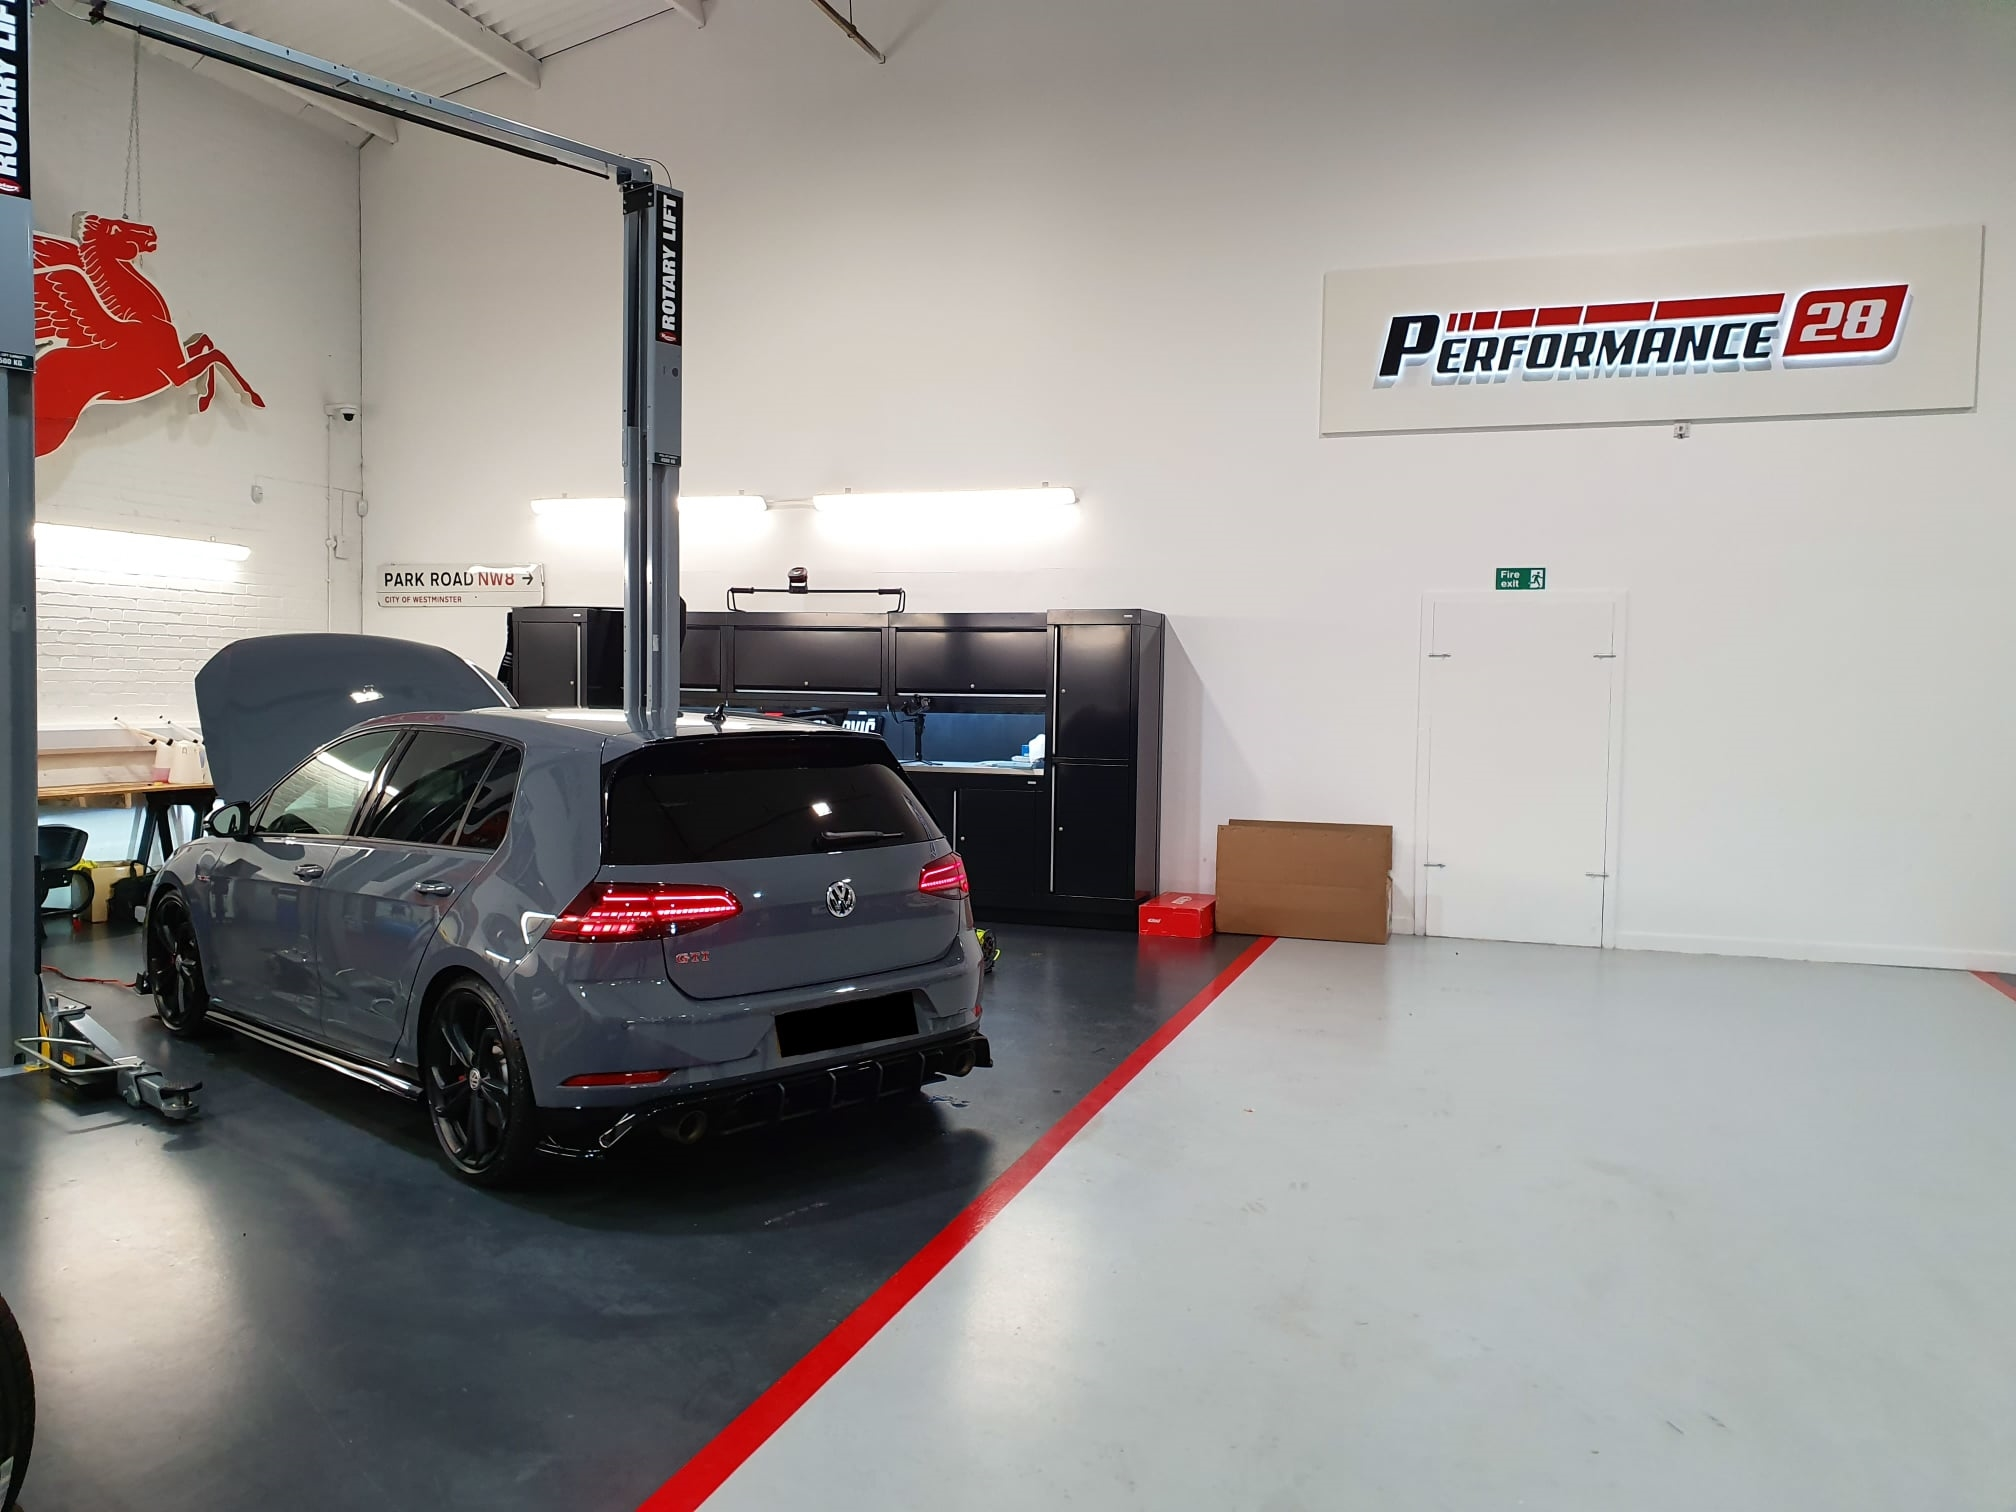 Golf GTI TCR stage 1 tune & DSG tune